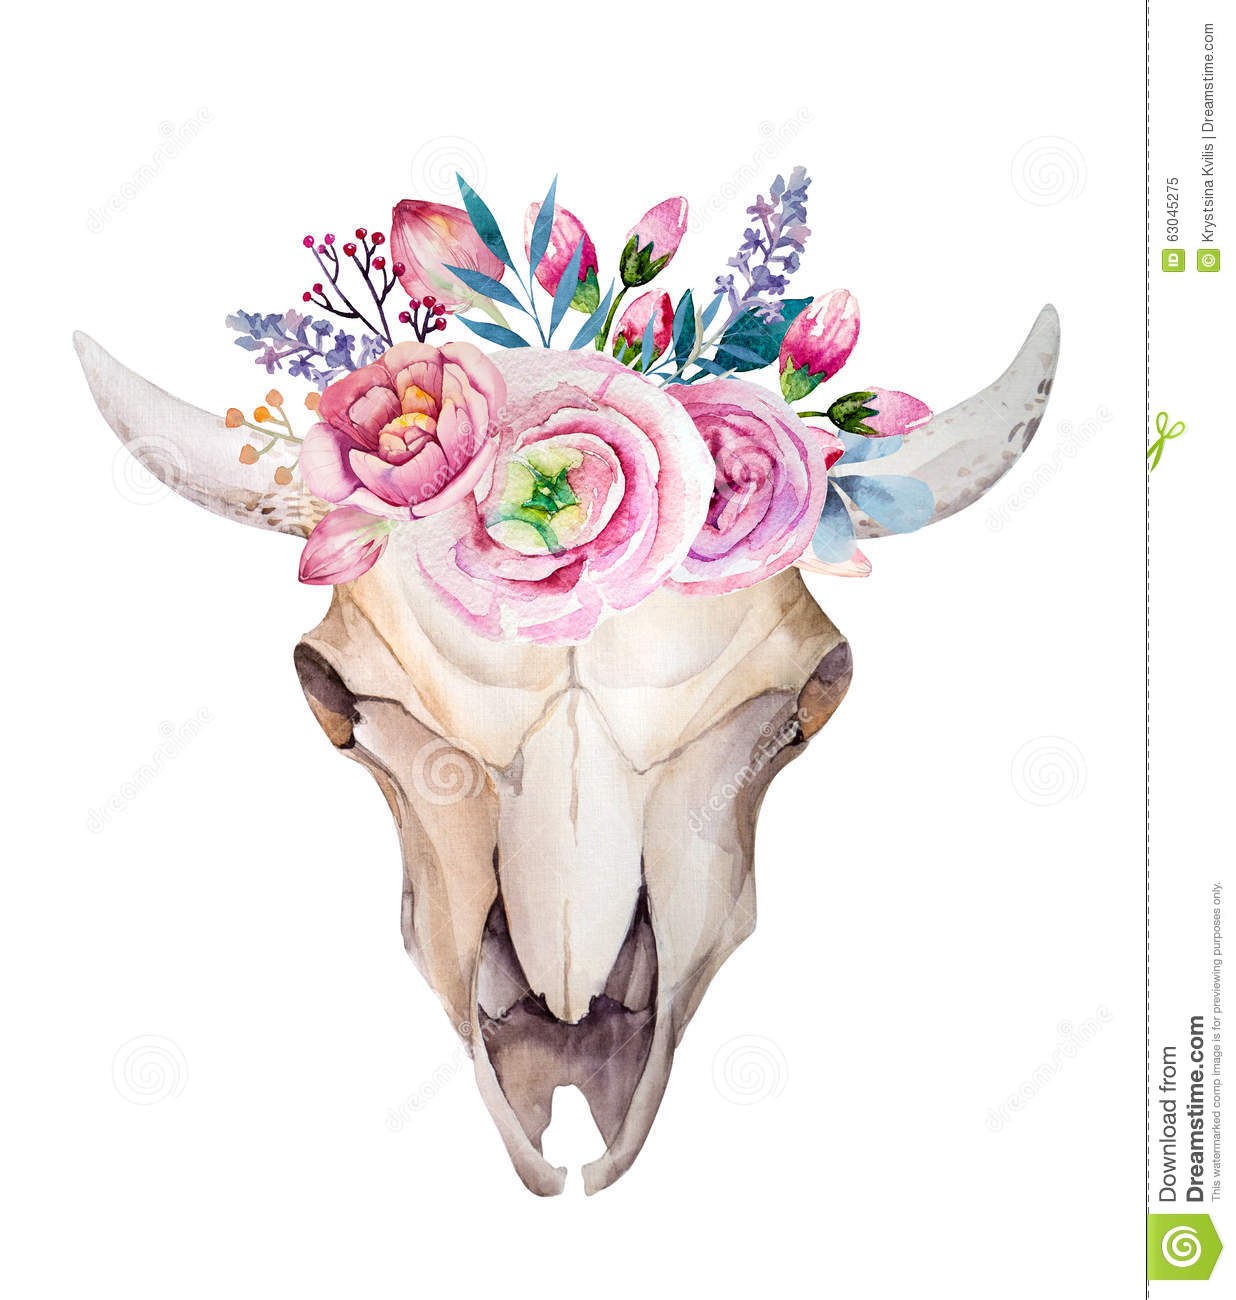 Watercolor cow skull with flowers and feathers